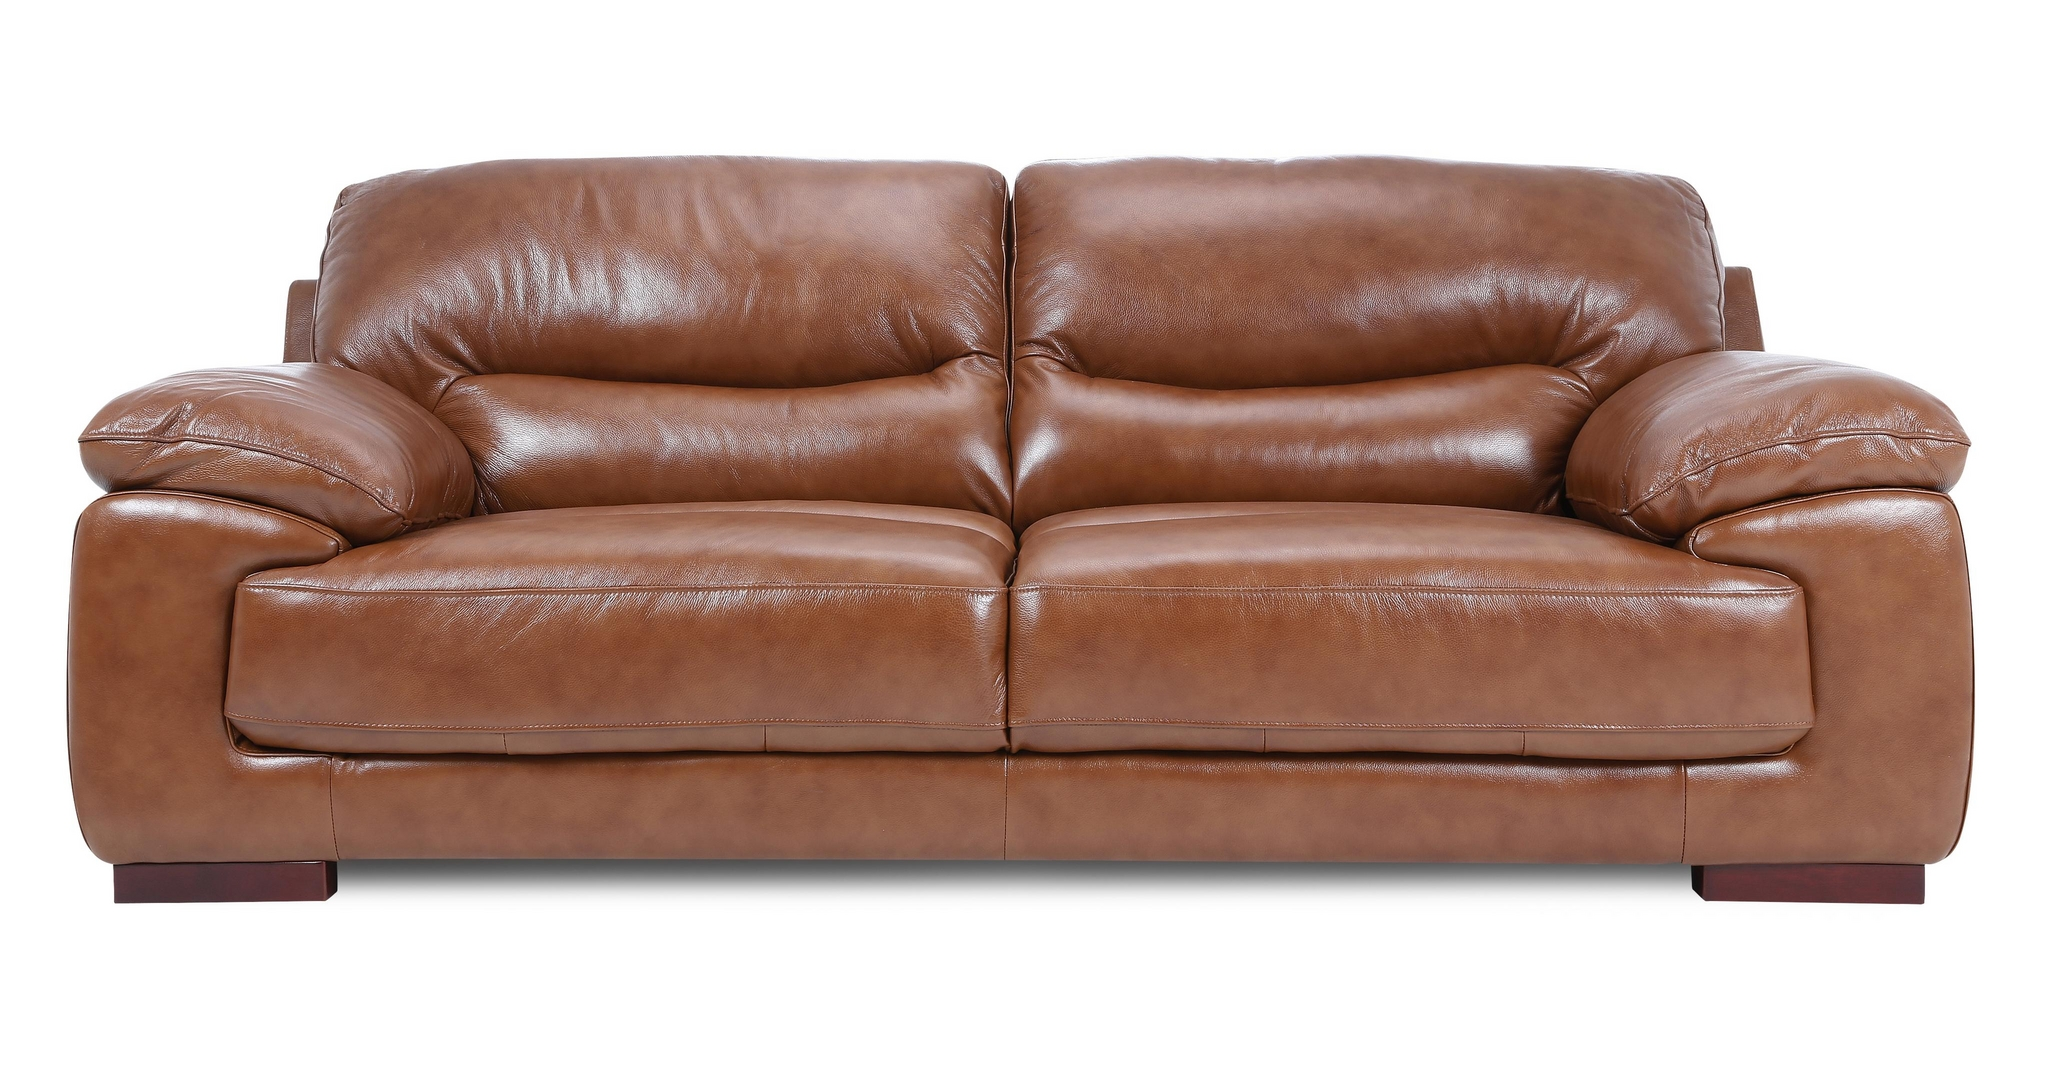 Dfs dazzle settee brandy colour couch 3 seater leather for 3 on a couch